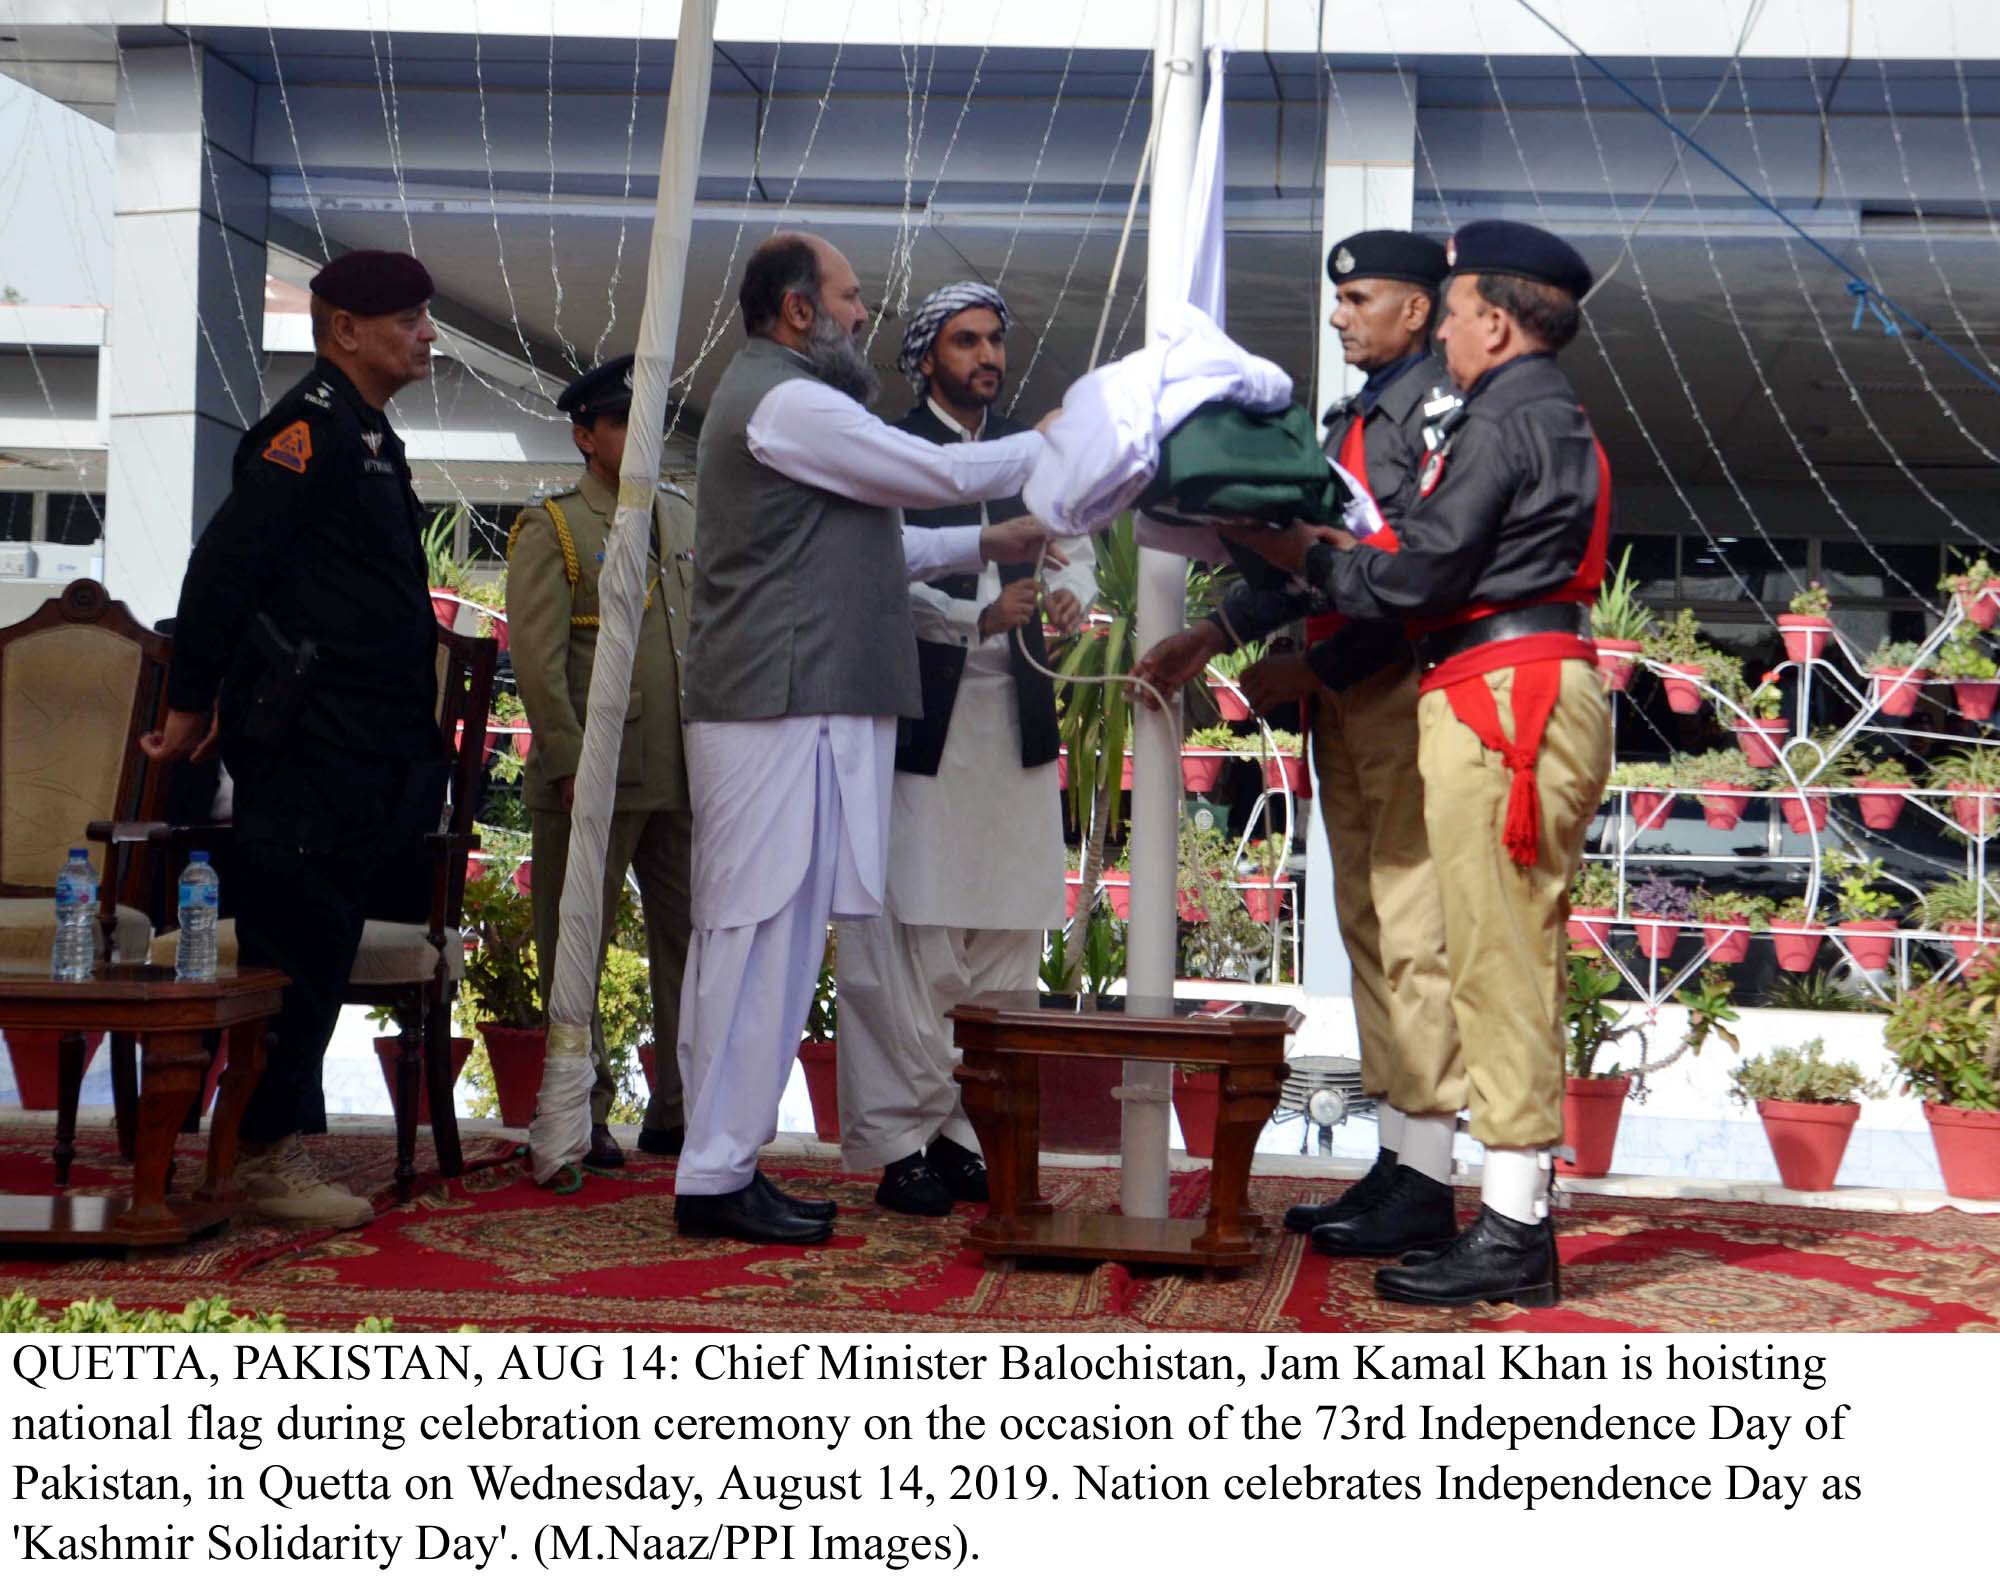 Balochistan Chief Minister hoists national flag on the occasion of Independence Day in Quetta. PHOTO: PPI